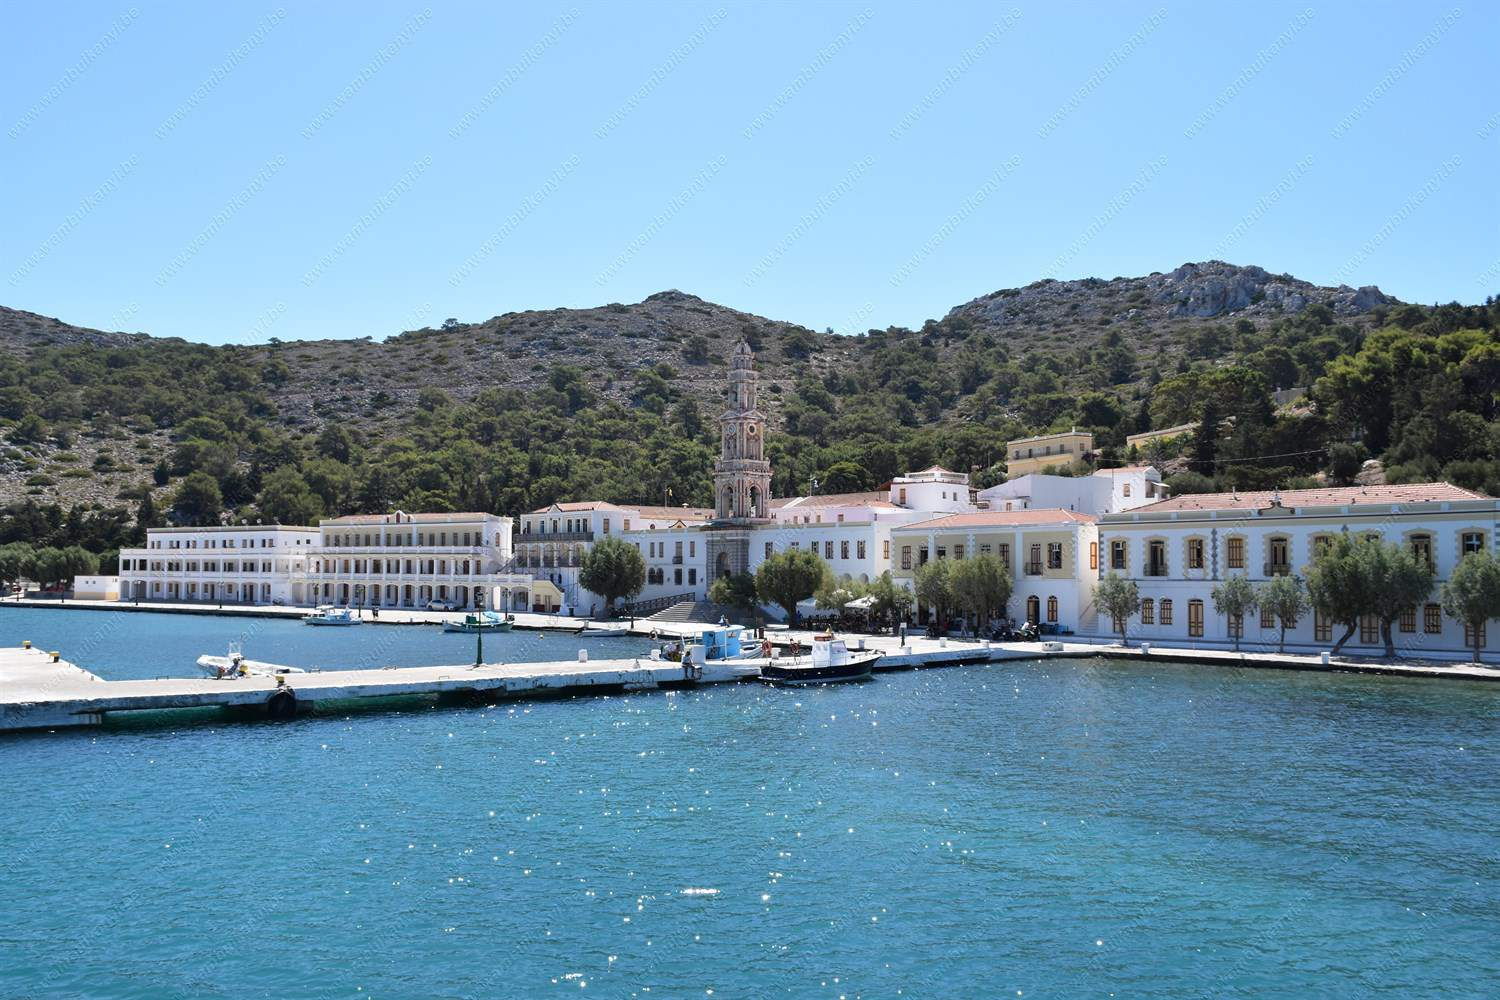 Boat Cruise to Symi Island, Greece